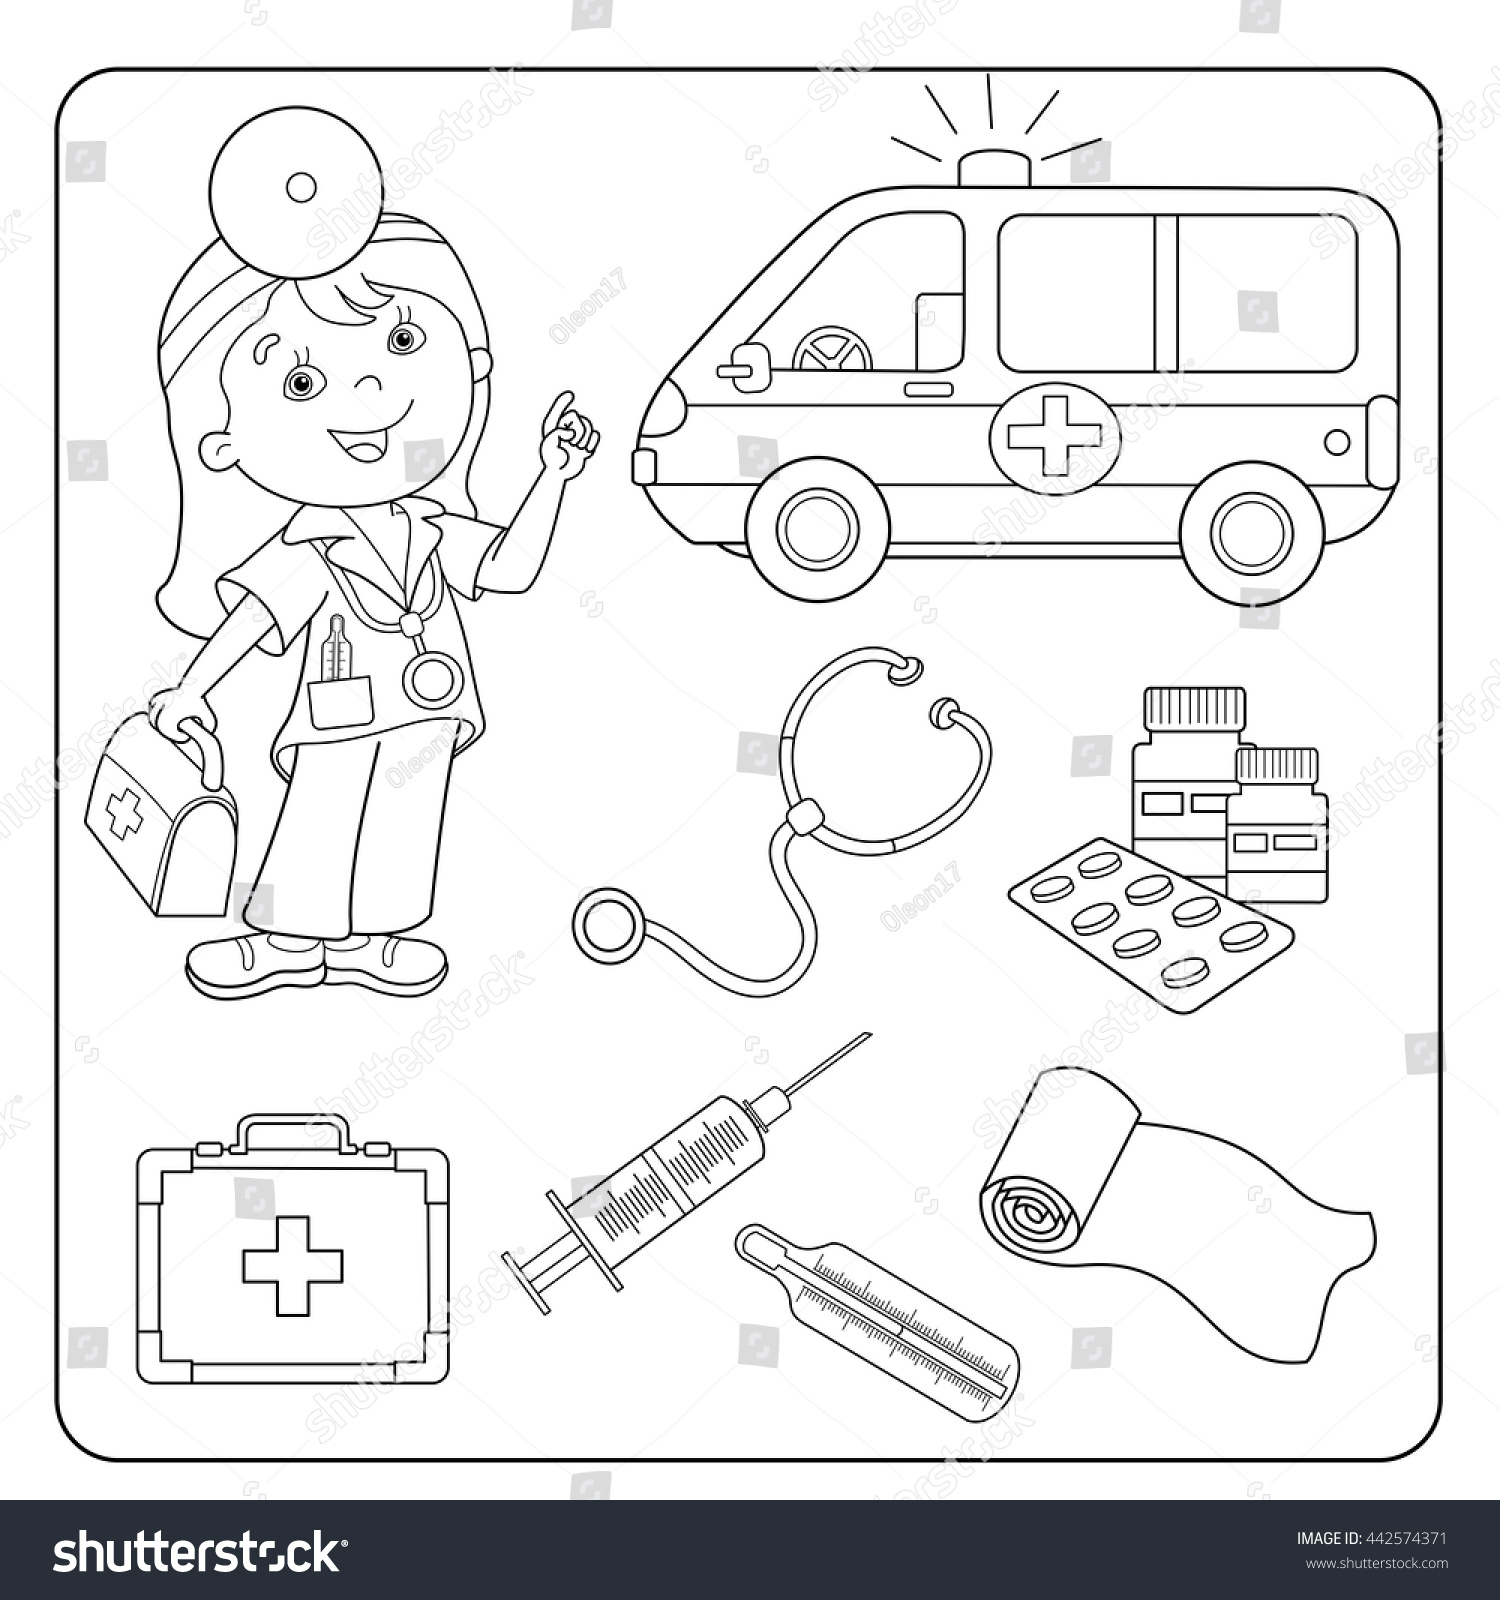 coloring page outline of cartoon doctor with first aid kit ambulance car set of - Aid Coloring Pages Kids